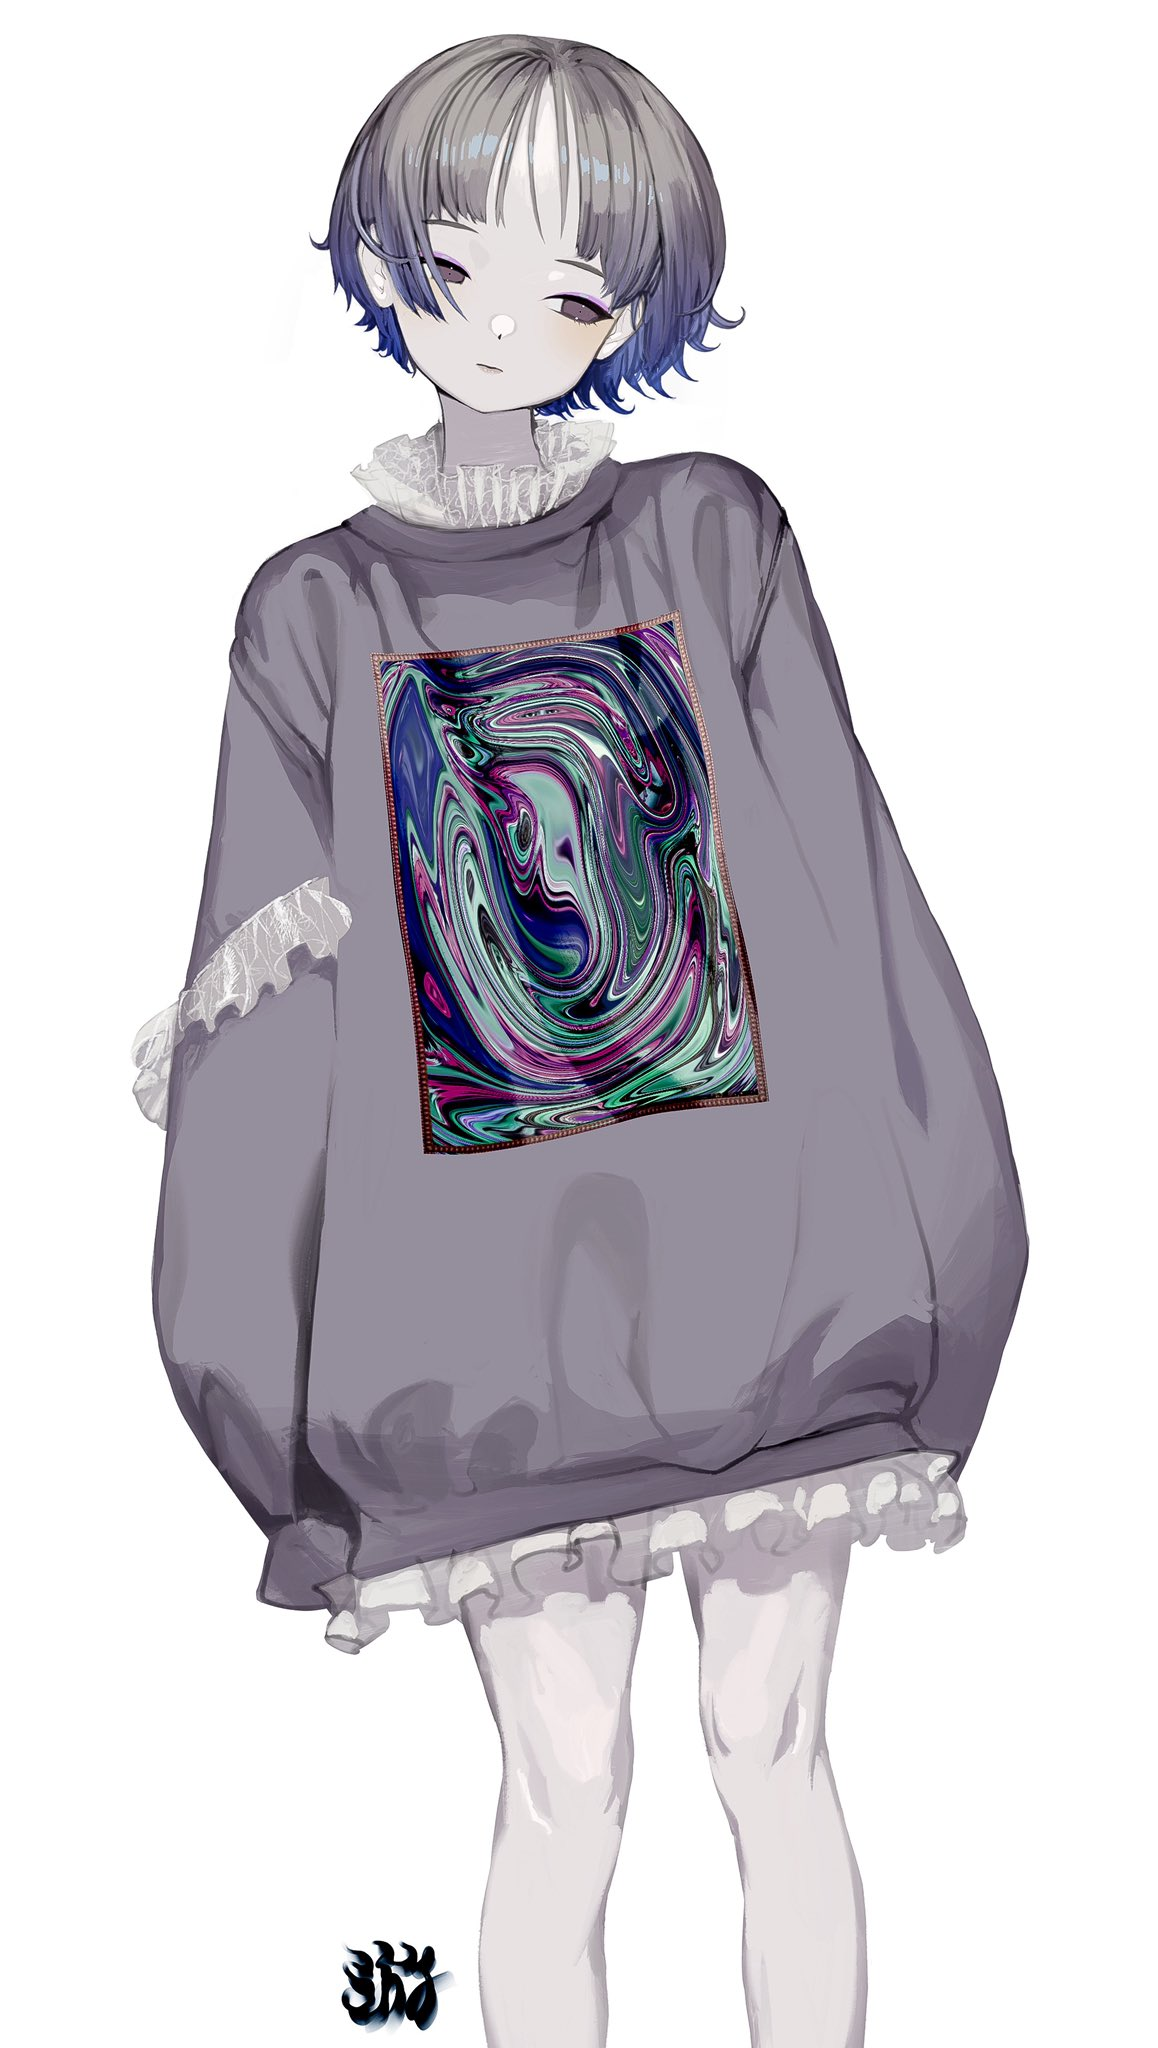 1girl abstract afternooners bare_legs expressionless feet_out_of_frame frills grey_eyes grey_hair grey_sweater highres original print_sweater purple_eyeshadow short_hair simple_background solo sweater white_background